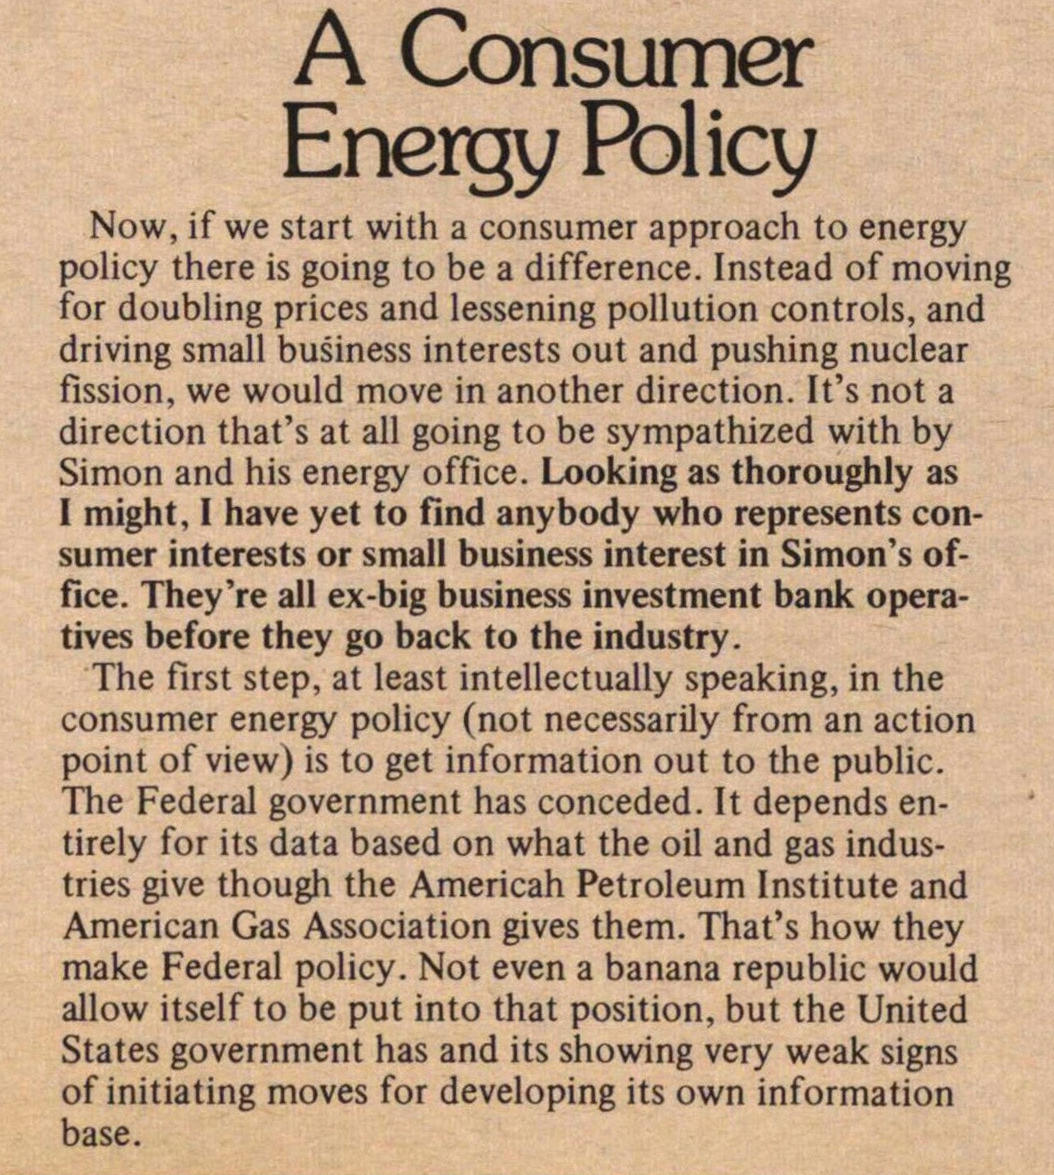 A Consumer Energy Policy image